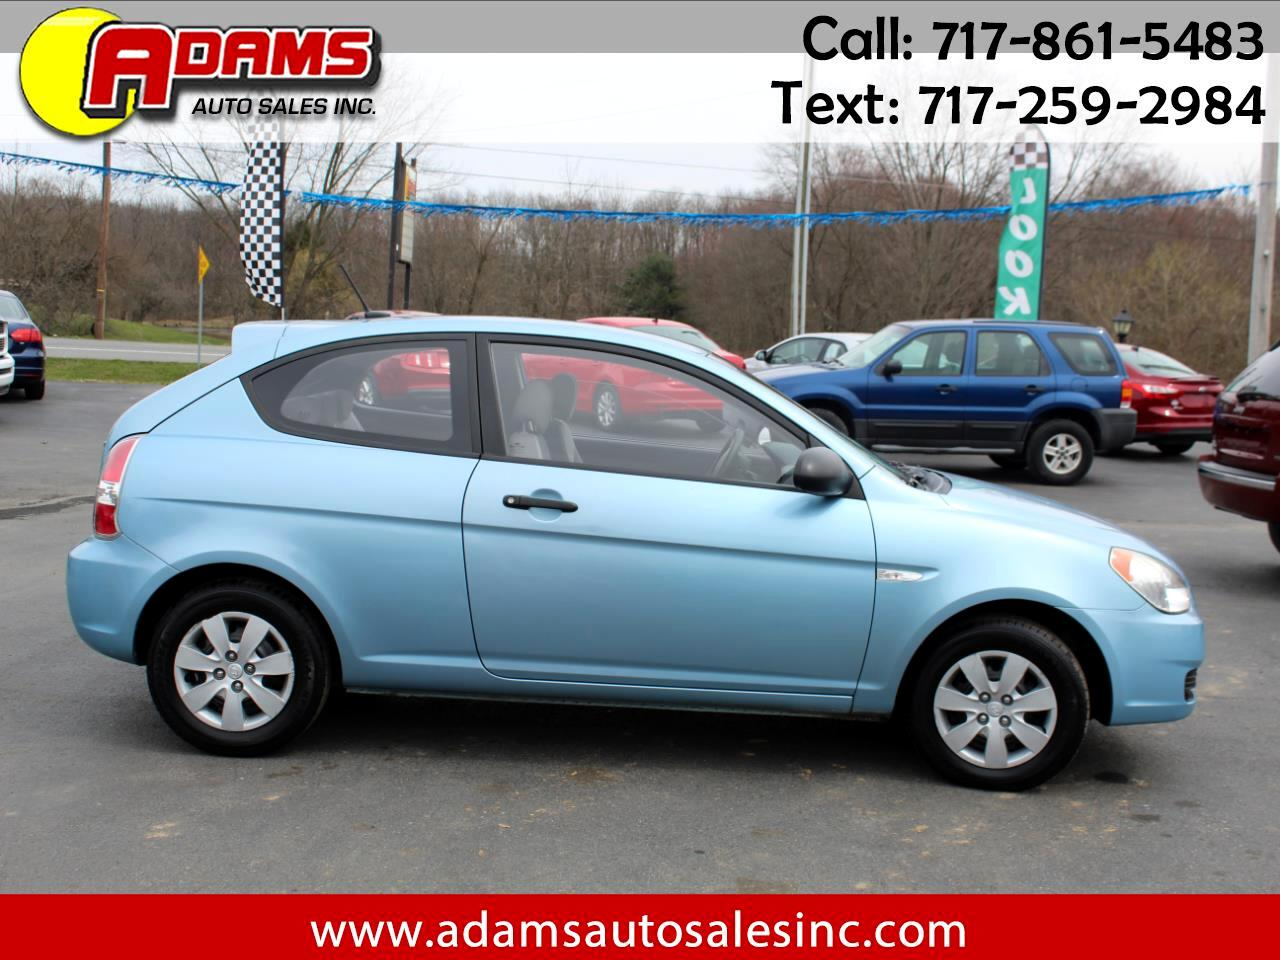 2009 Hyundai Accent 3dr HB Man GS w/Popular Pkg